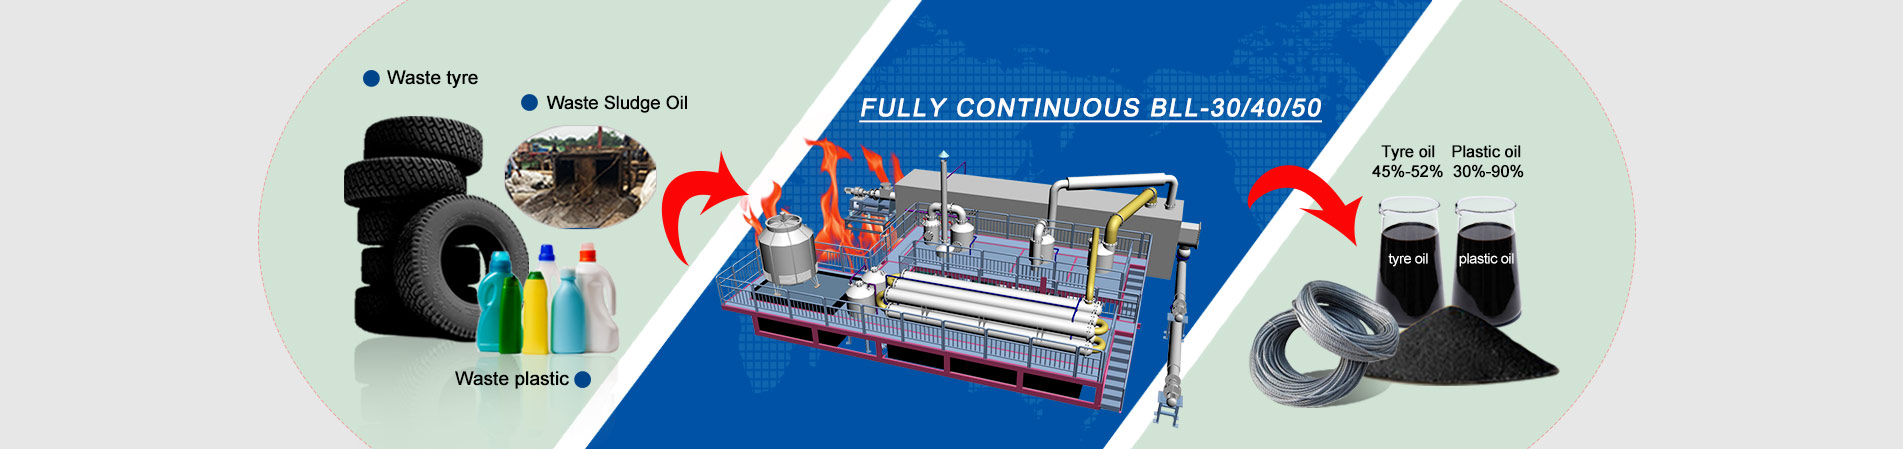 Pyrolysis System for Waste | Pyrolysis Tire Recycling System